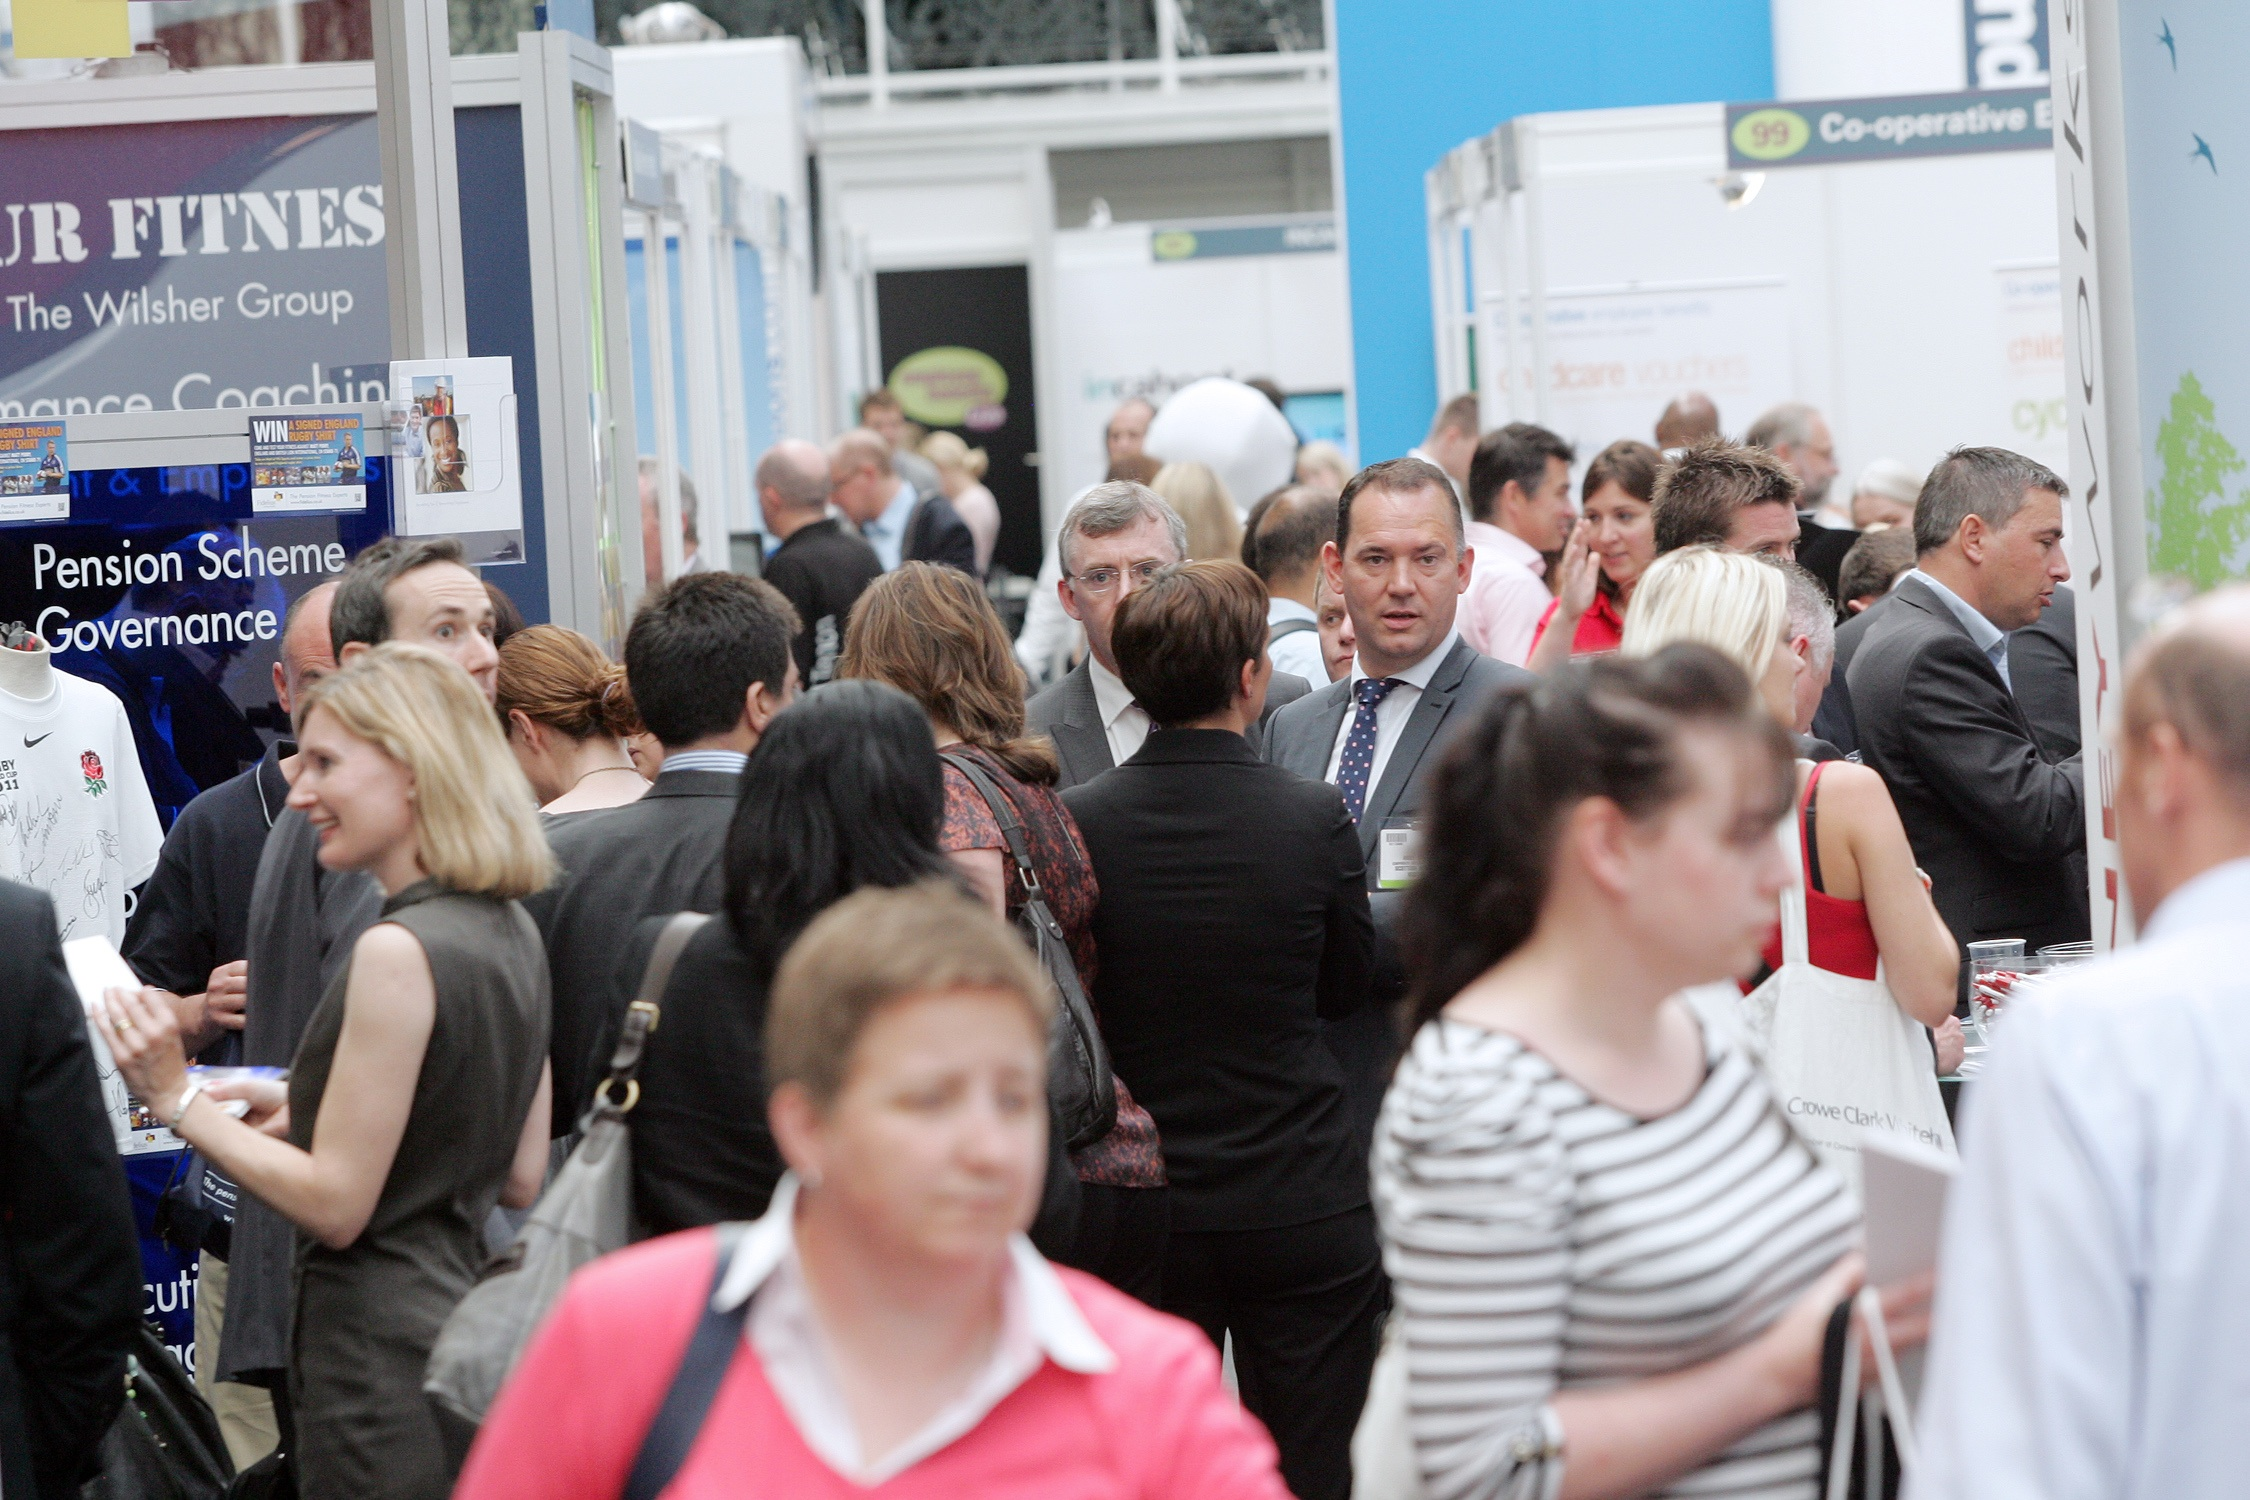 Employee Benefits Live 2012